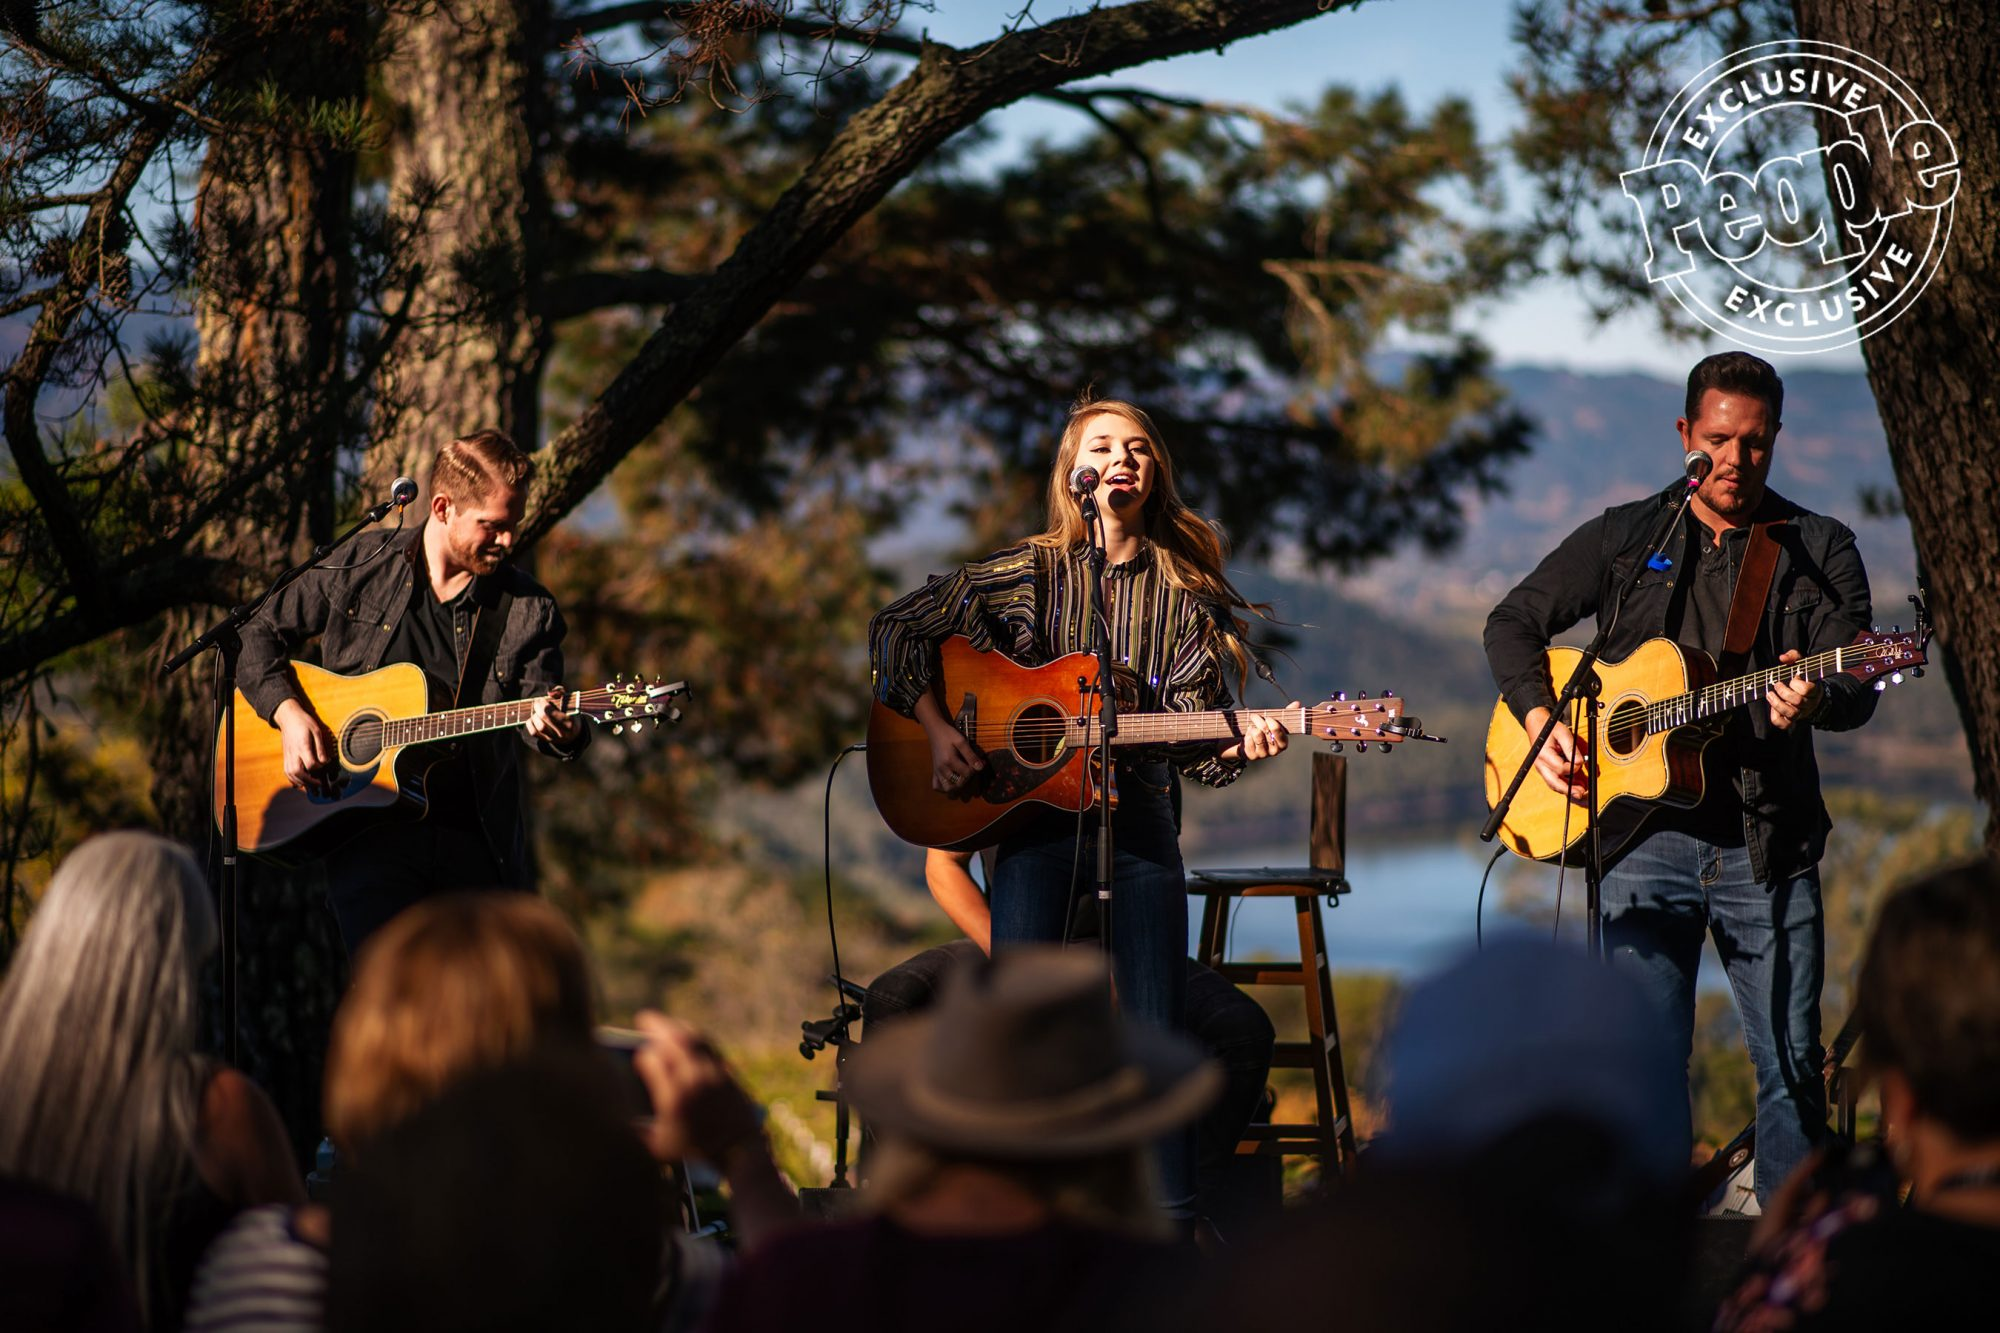 Tegan-Marie-performs-at-Chappellet-Winery-during-LITV